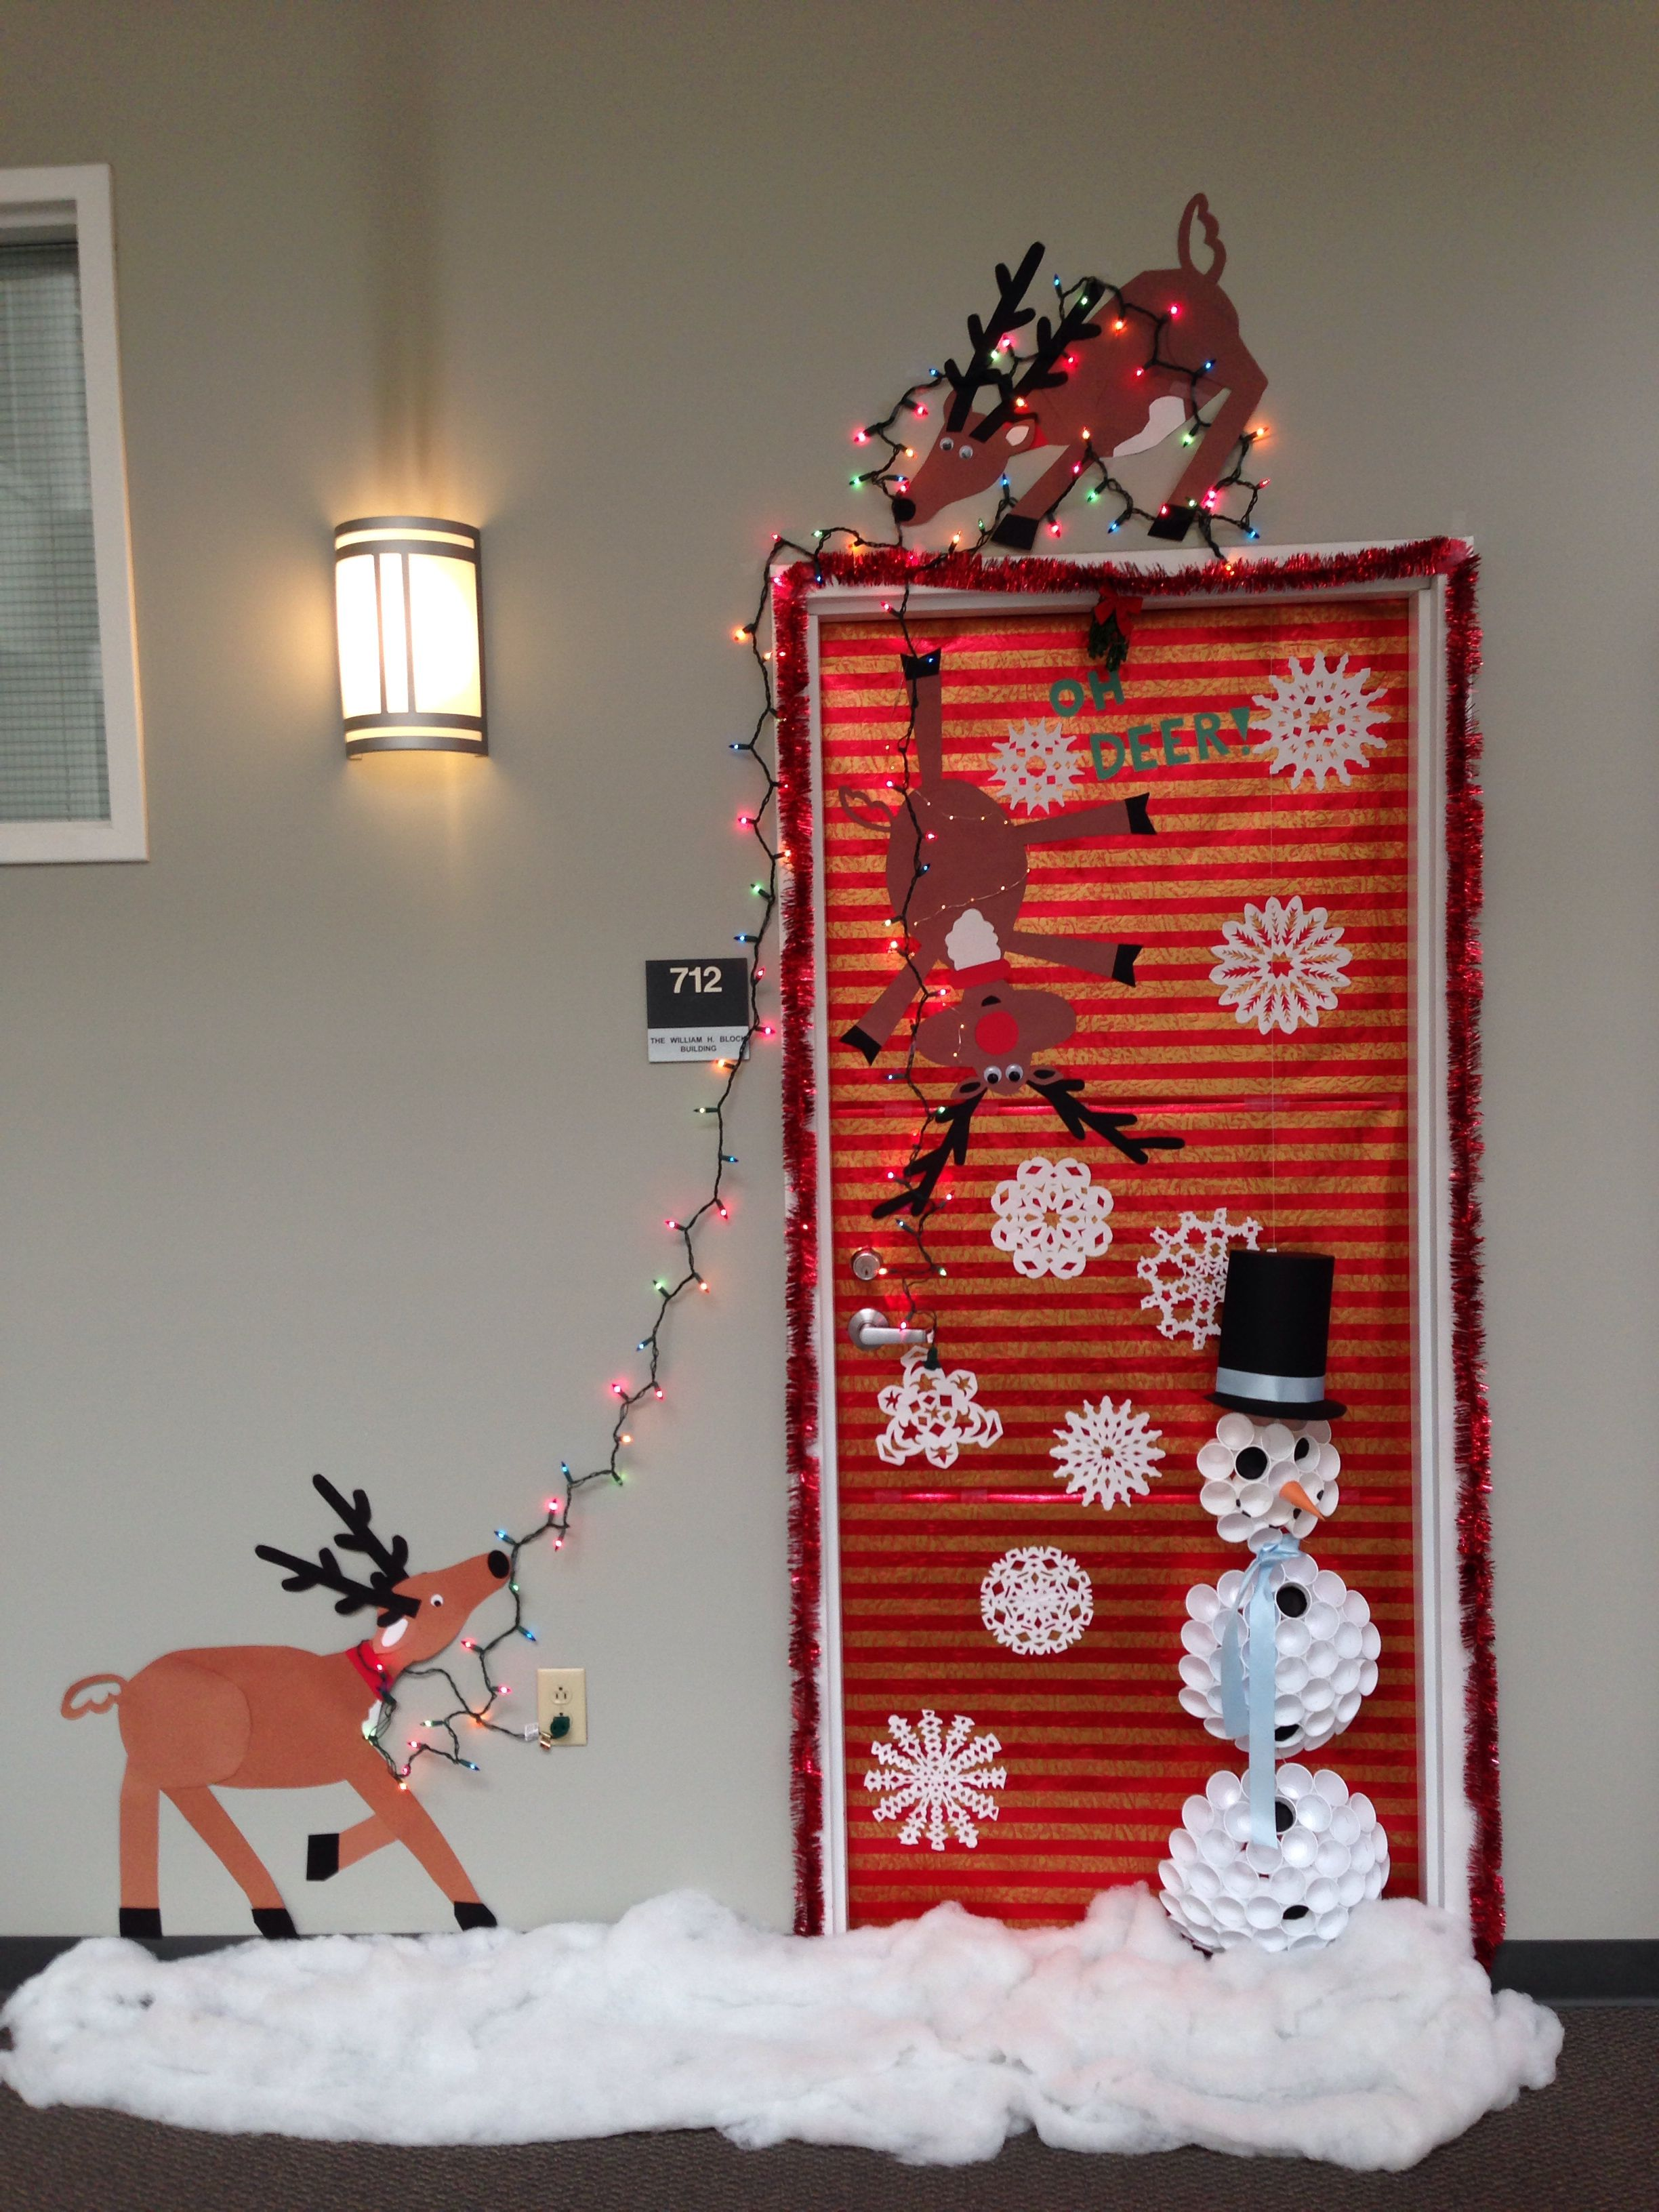 Our Christmas door decoration FIRST PLACE Made snowman with